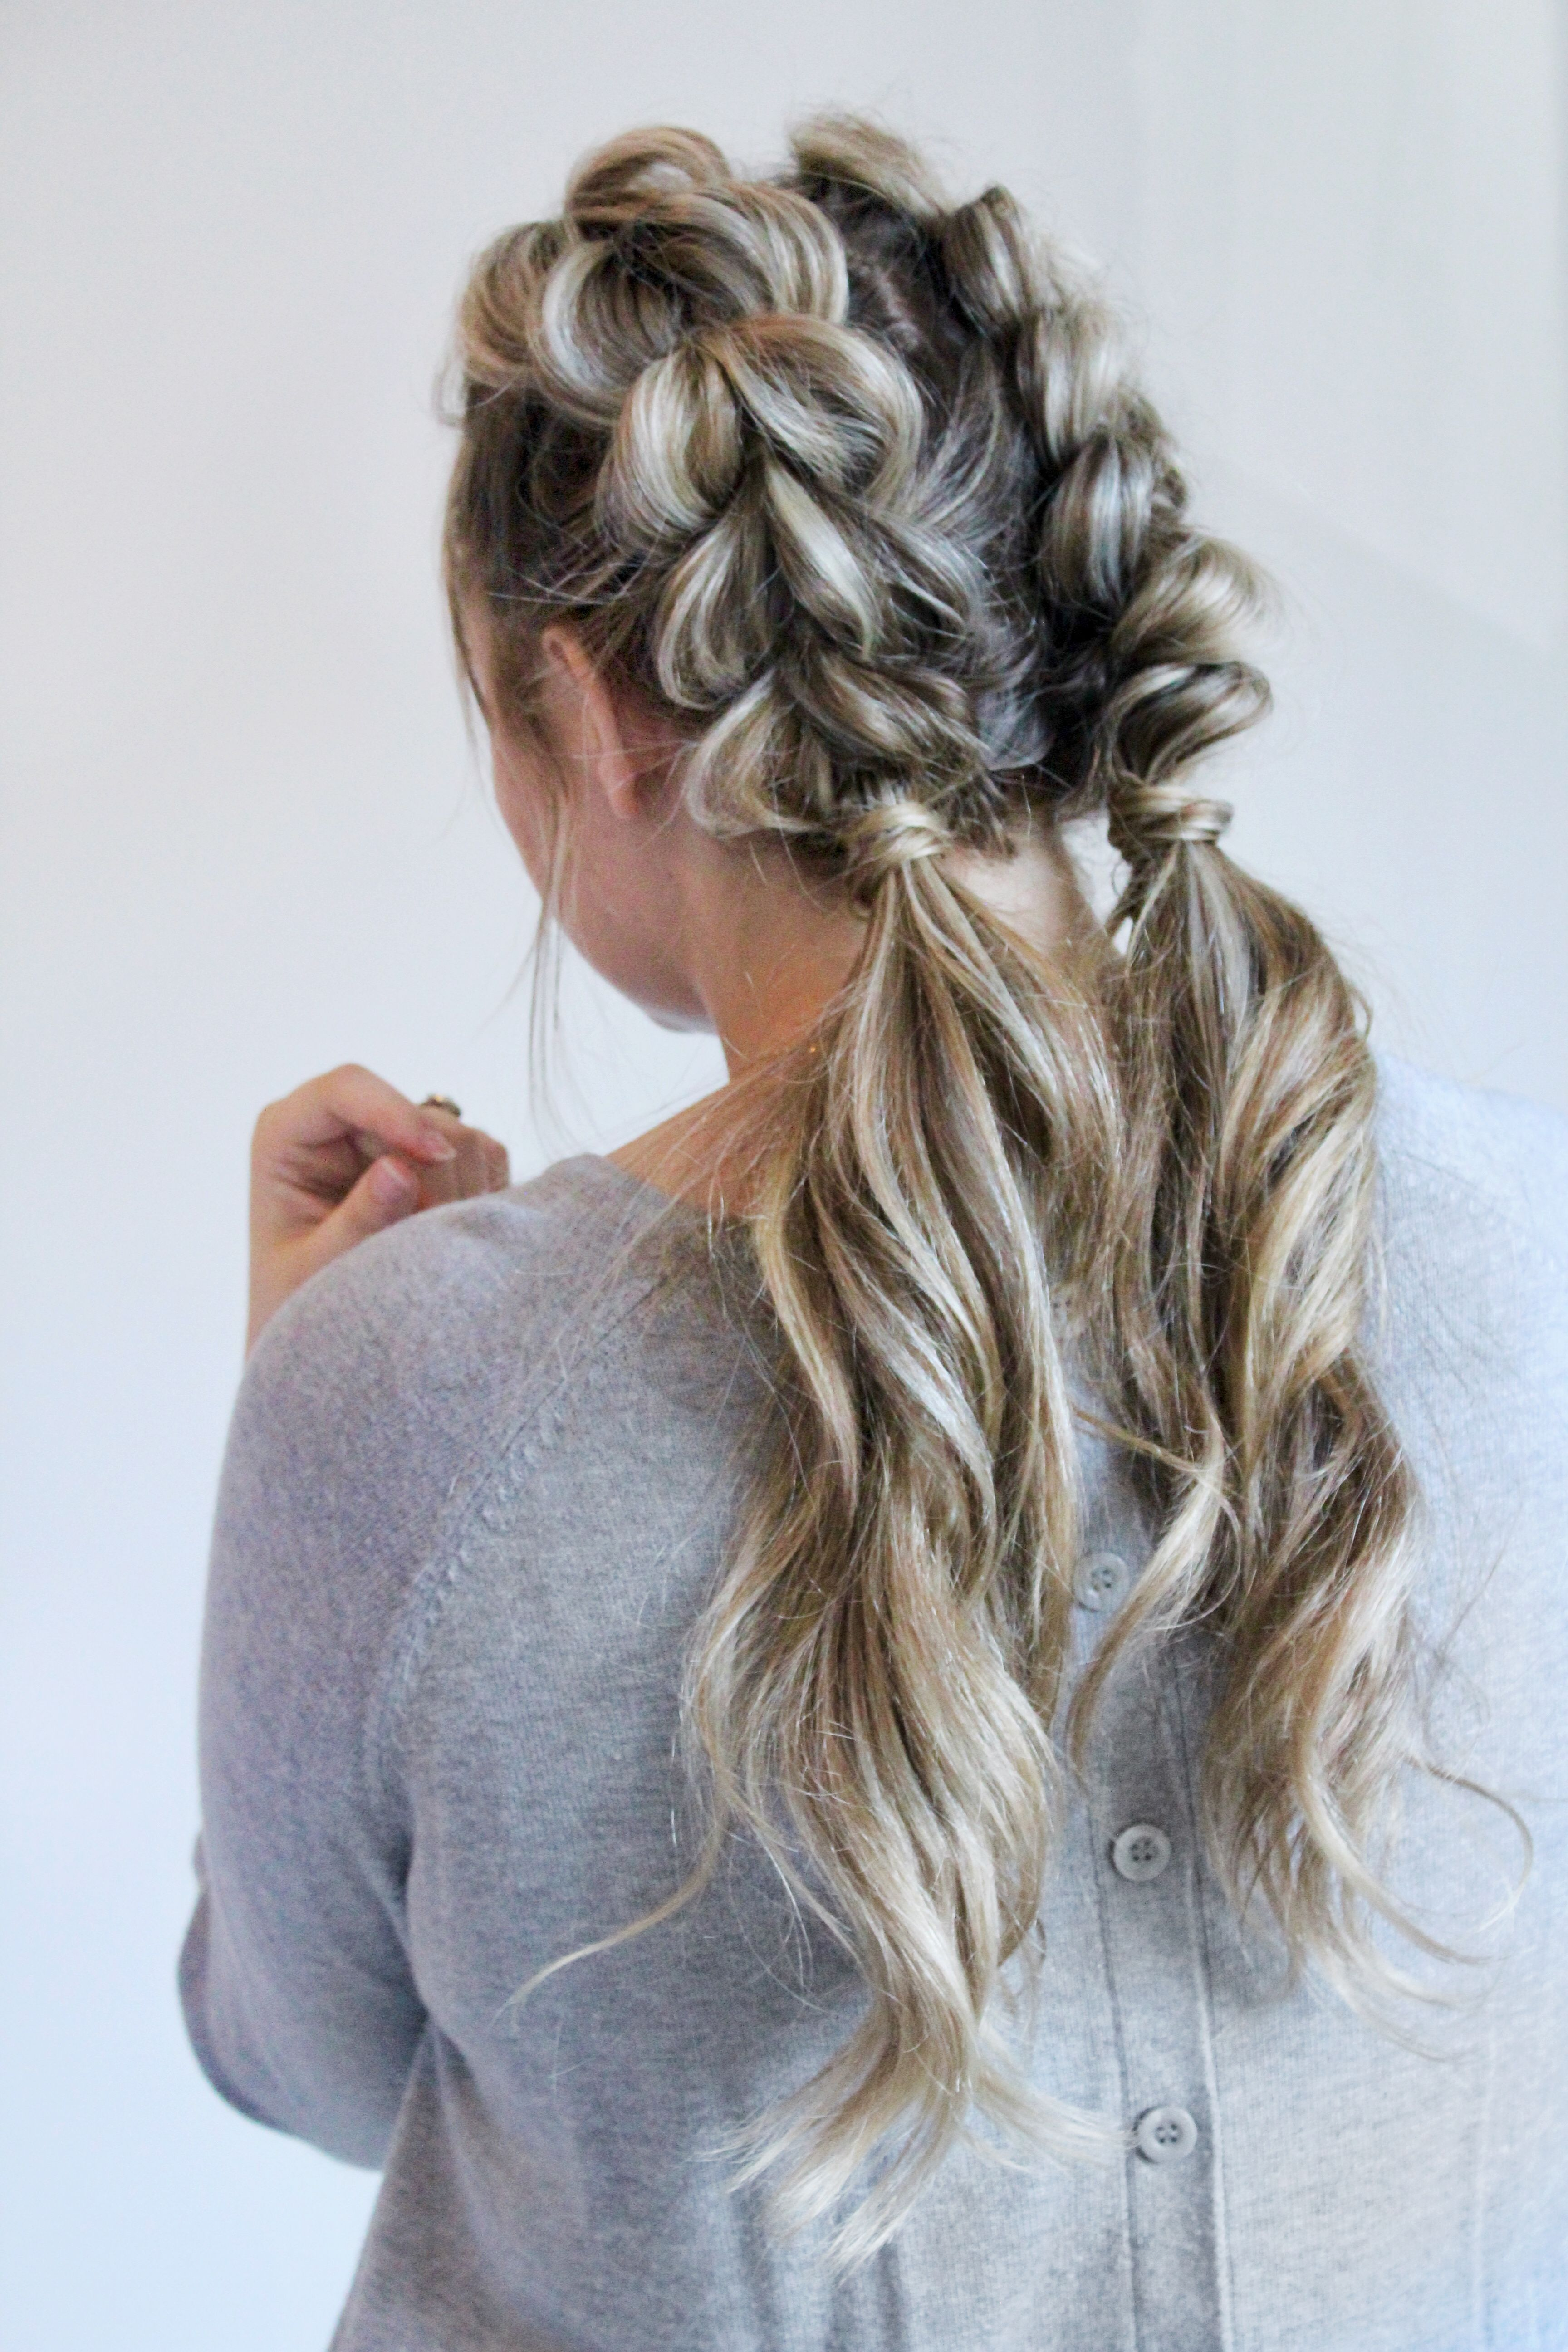 Magnificent pigtails at home